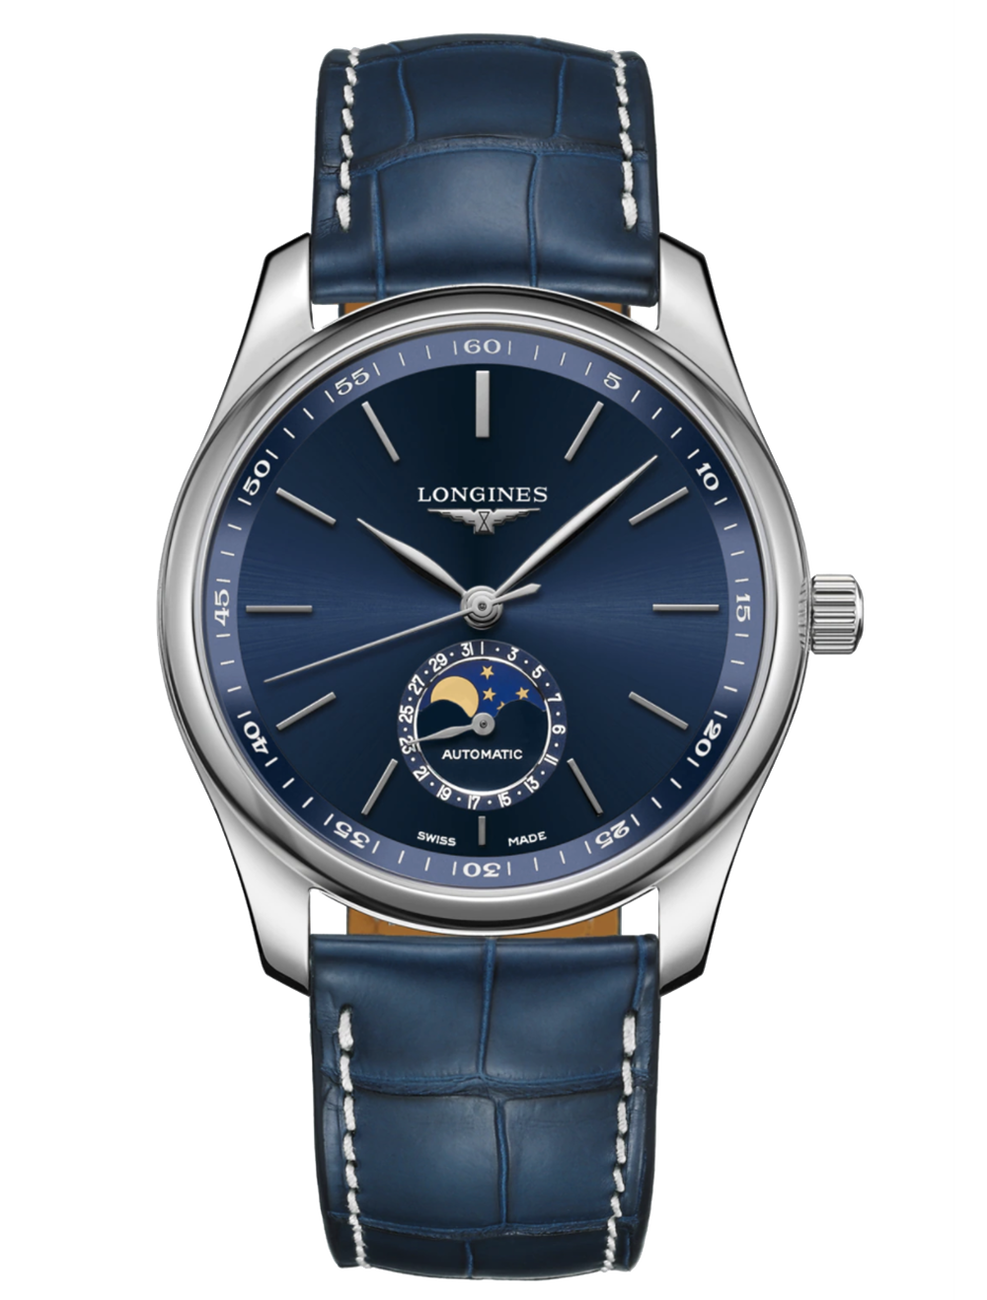 LONGINES MASTER COLLECTION L2.909.4.92.0